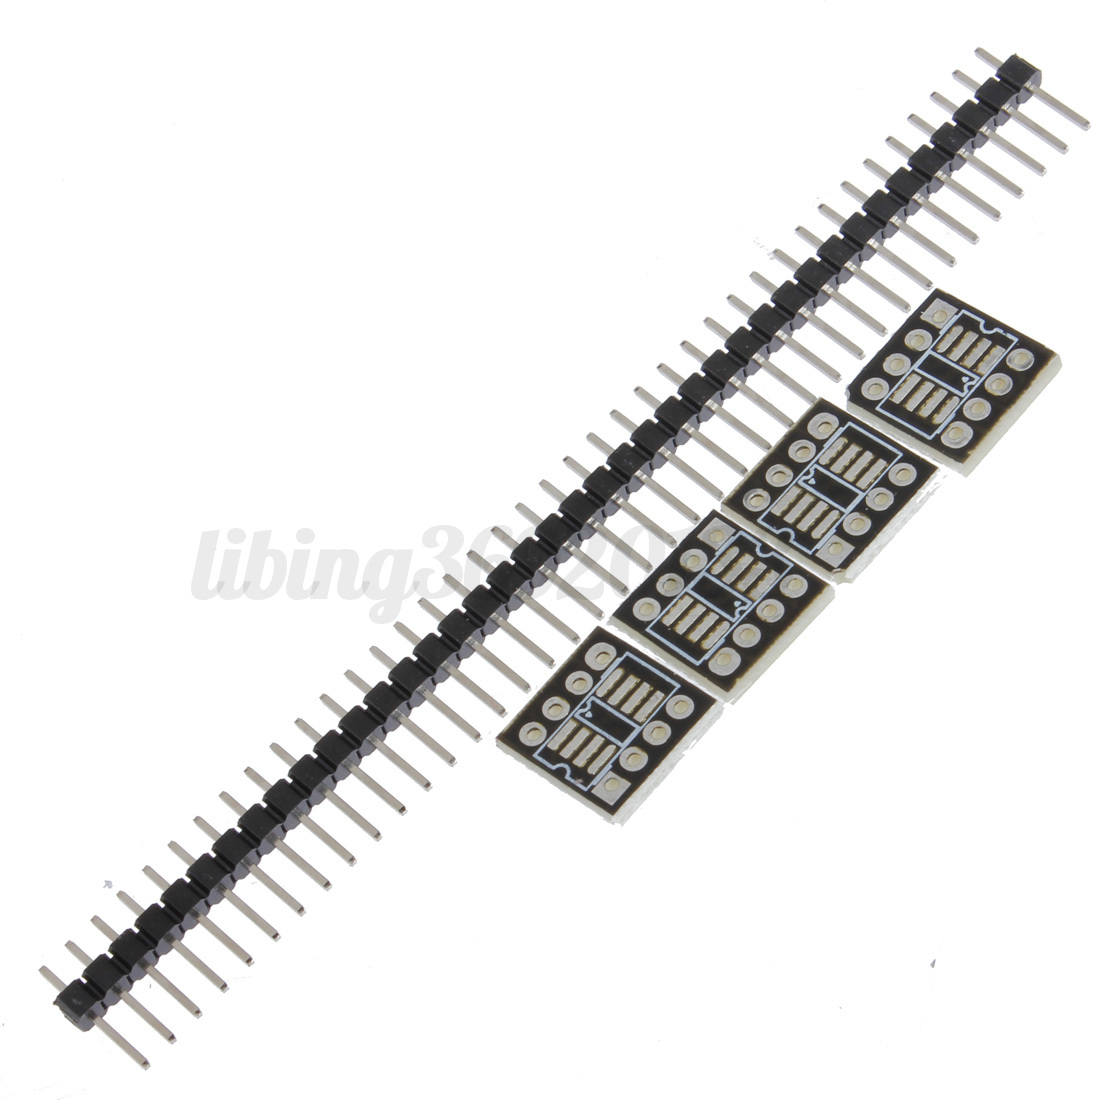 10 Pcs Sop8 So8 Soic8 To Dip8 Breakout Adapter Smd Pcb Convertor Board Module